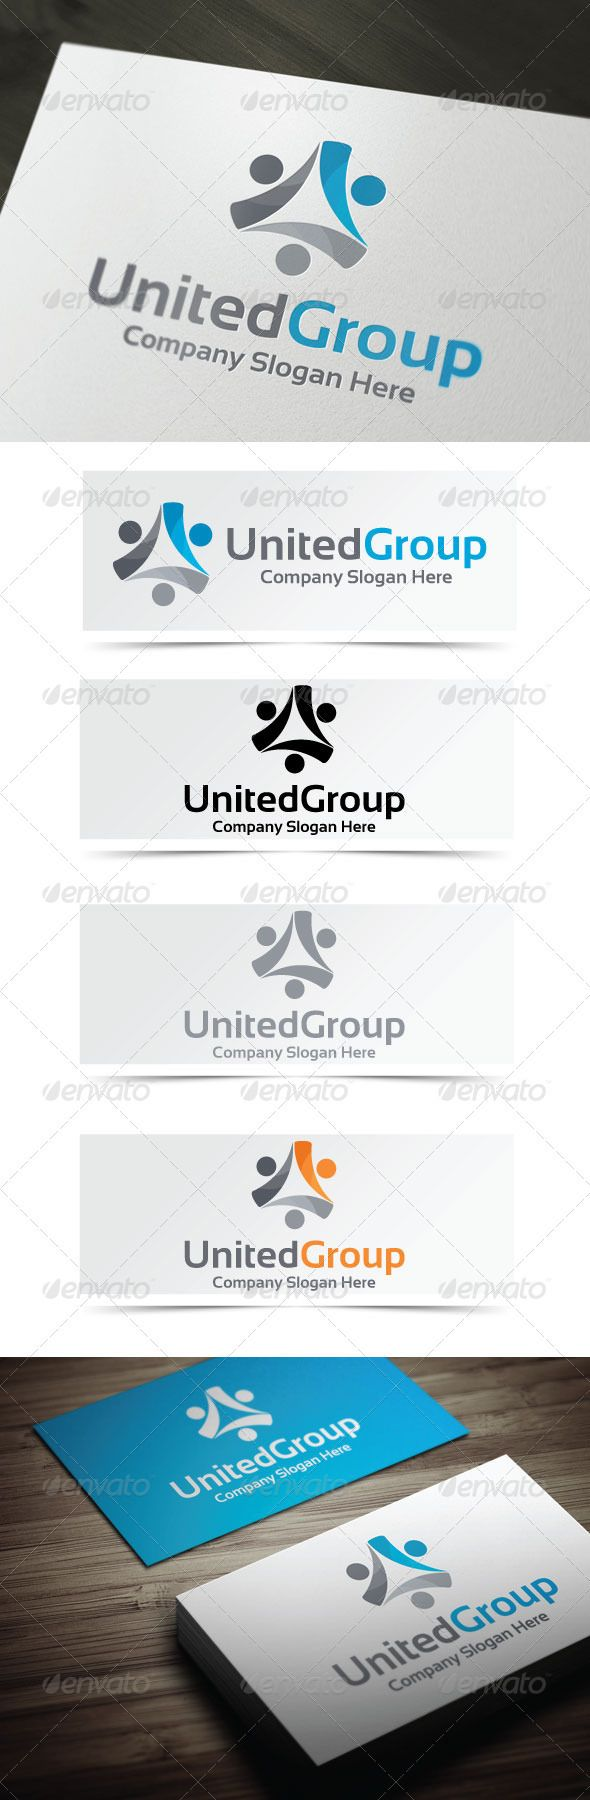 United Group - $29  http://graphicriver.net/user/debo243/portfolio